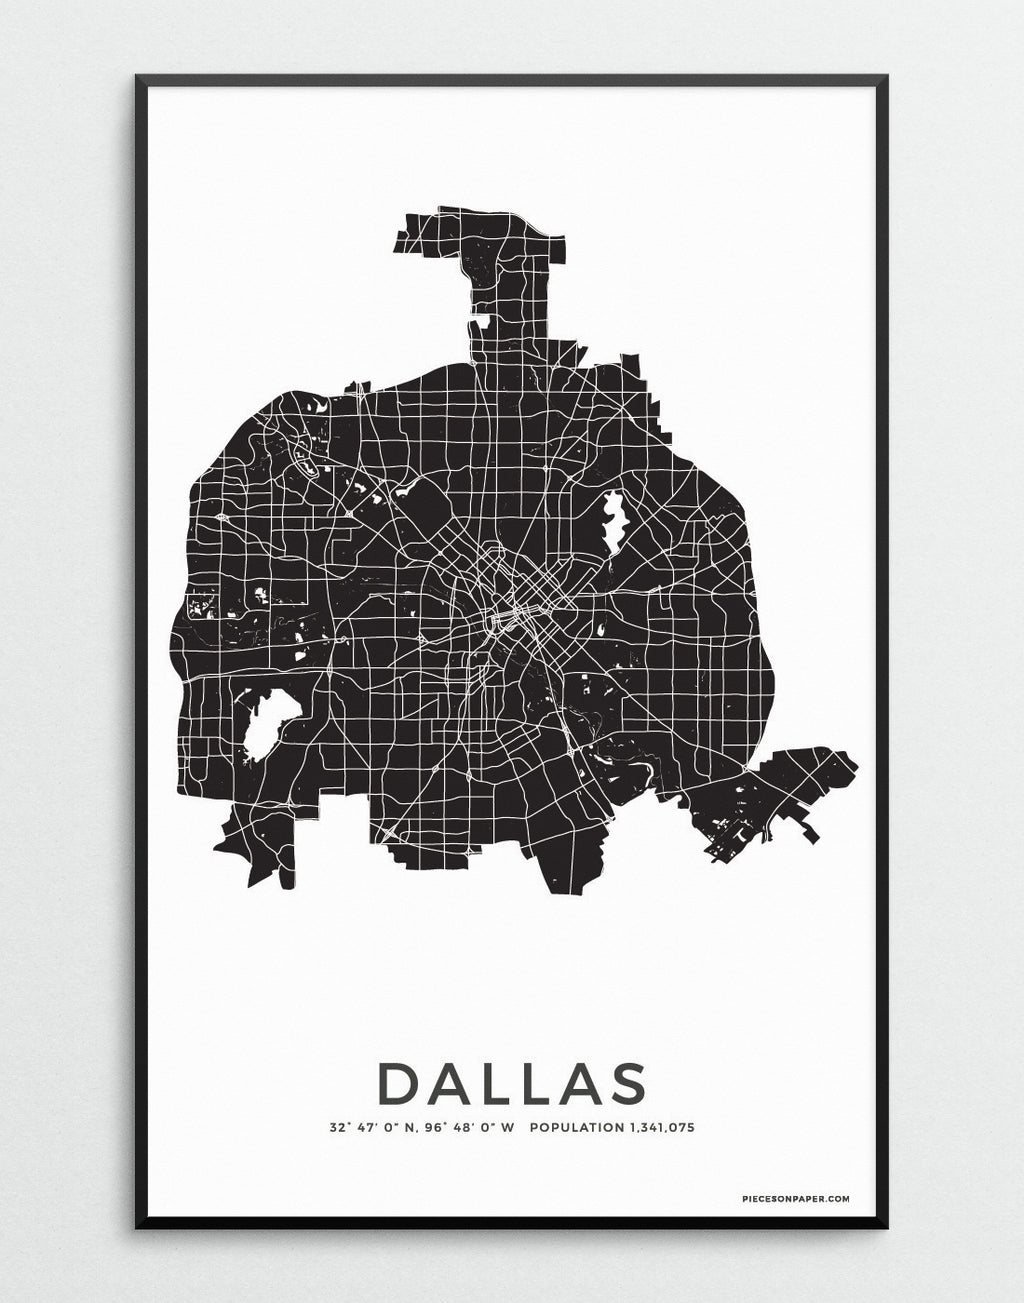 Dallas City Map print for the wall